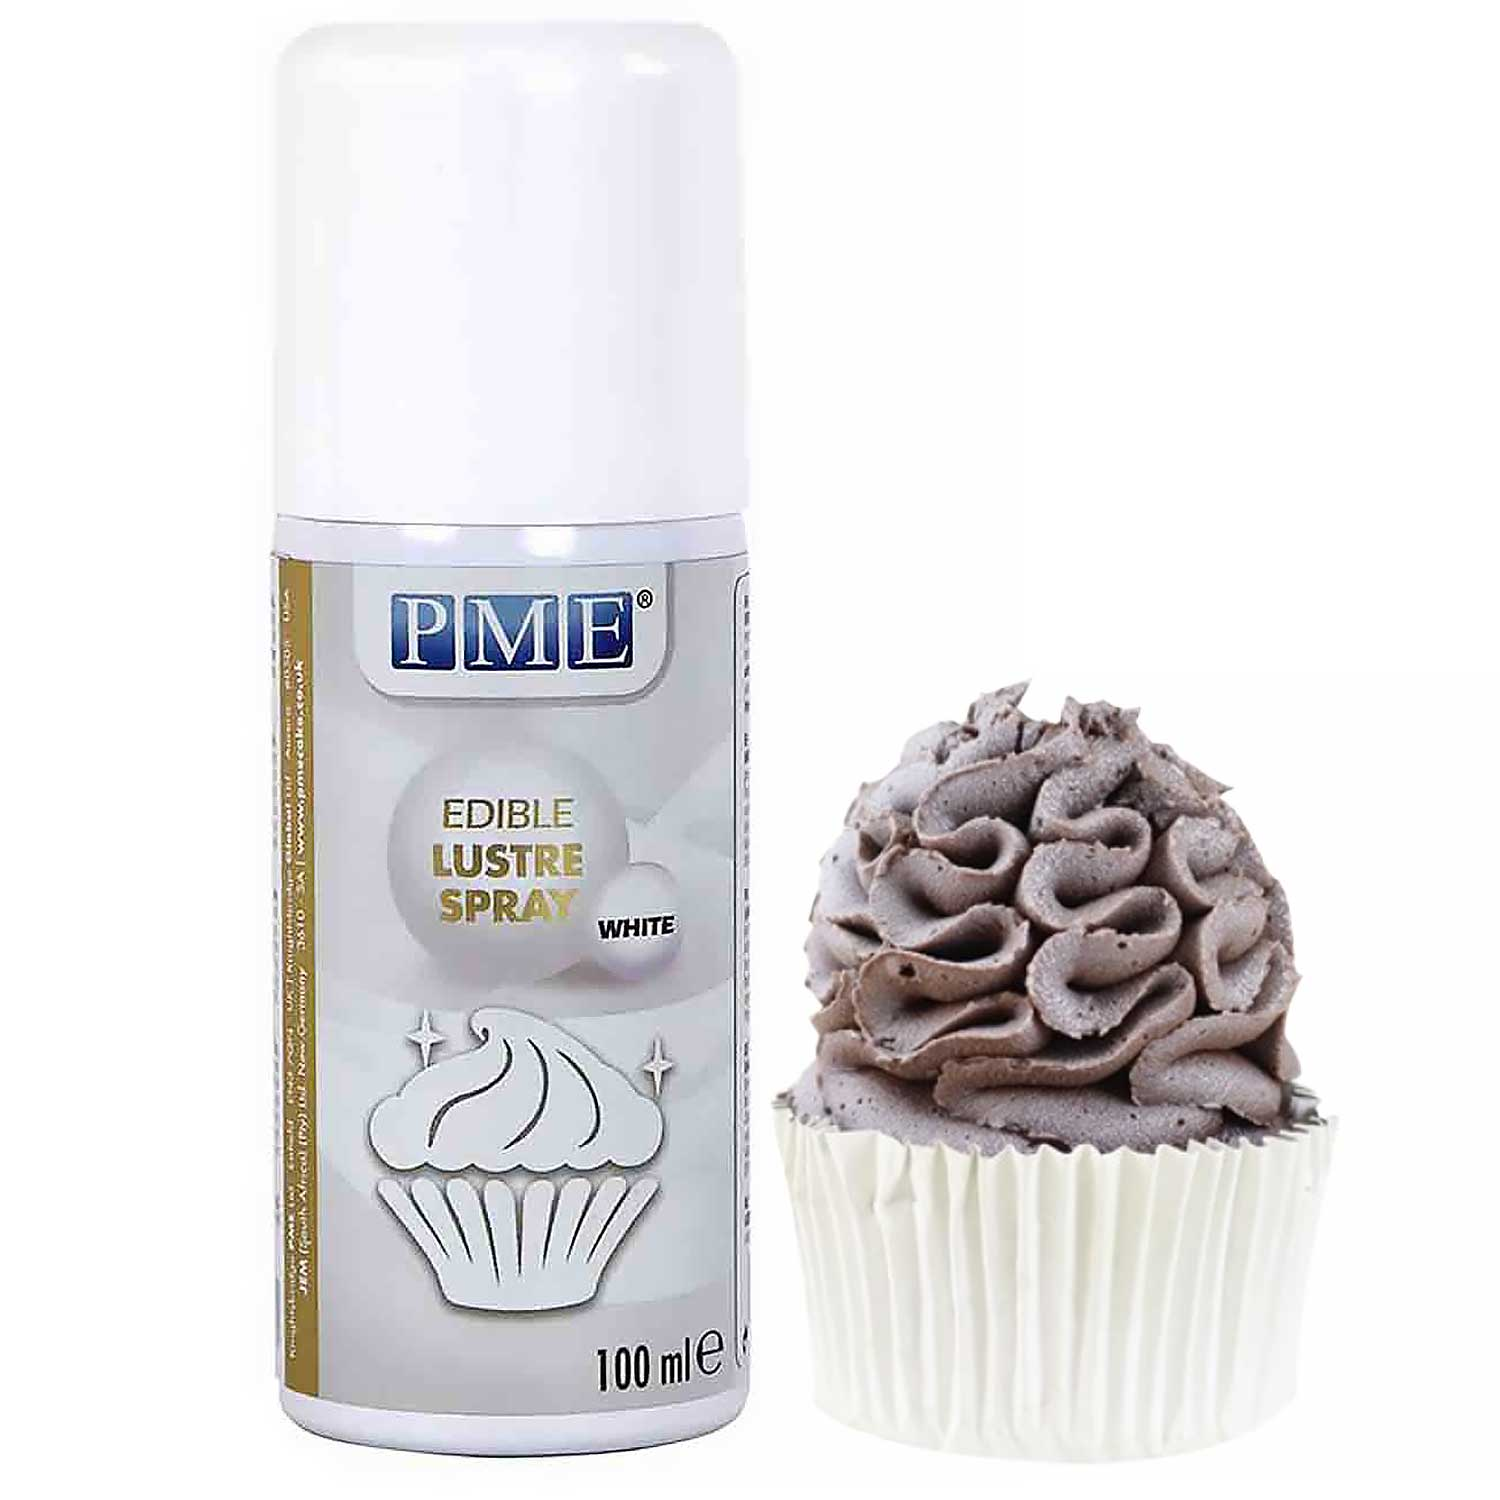 White Edible Lustre Spray